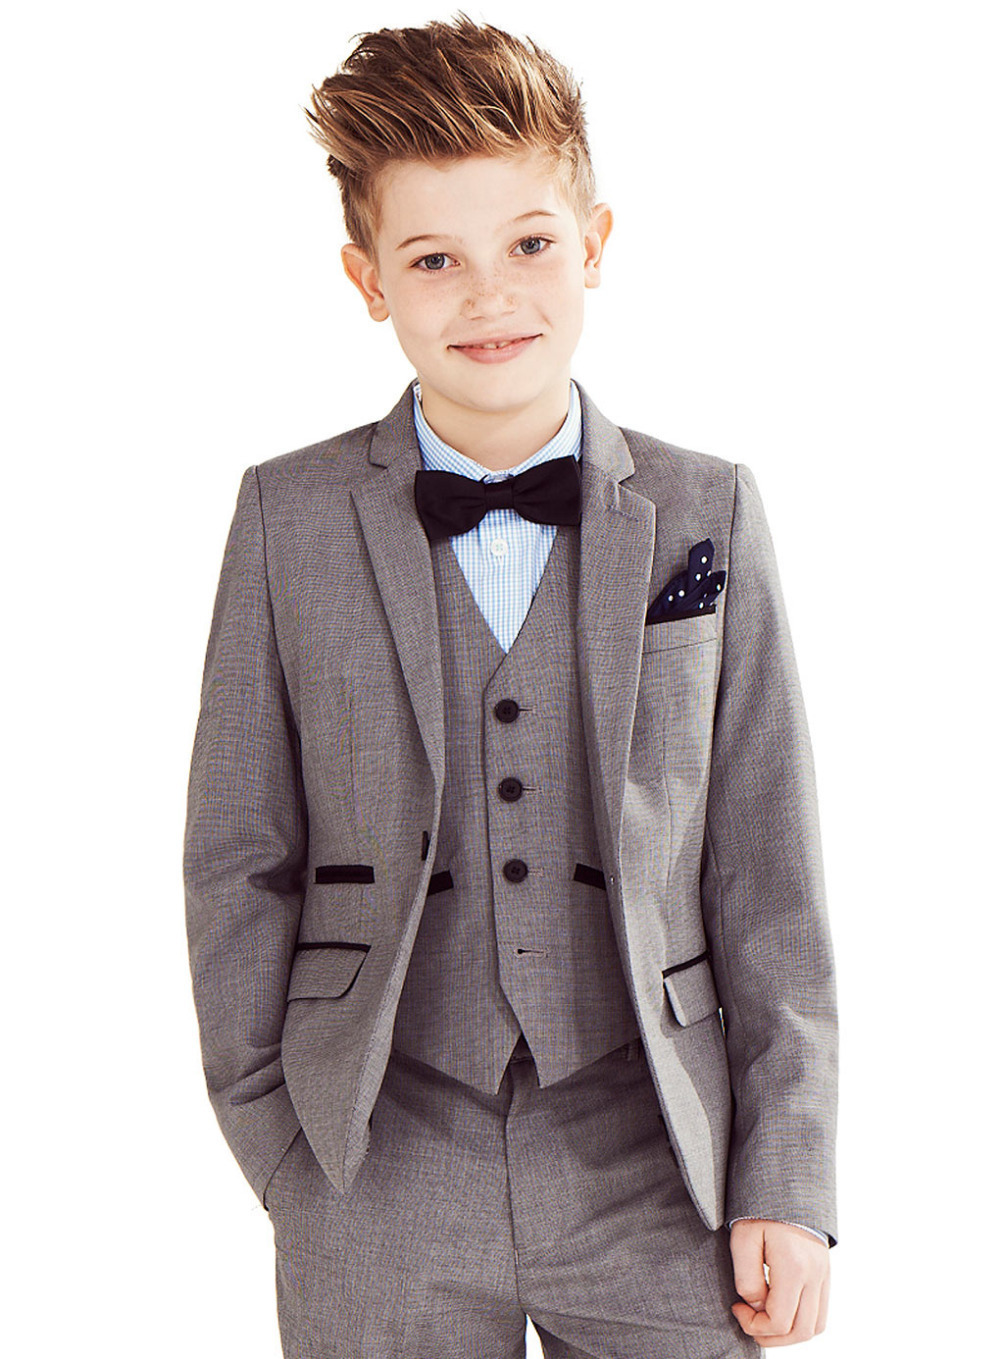 Fashion Children suits for party customized boy Kids suits set (Jacket+Pants+Shirt+vest+ tie)blazer outerwear child suits(China (Mainland))